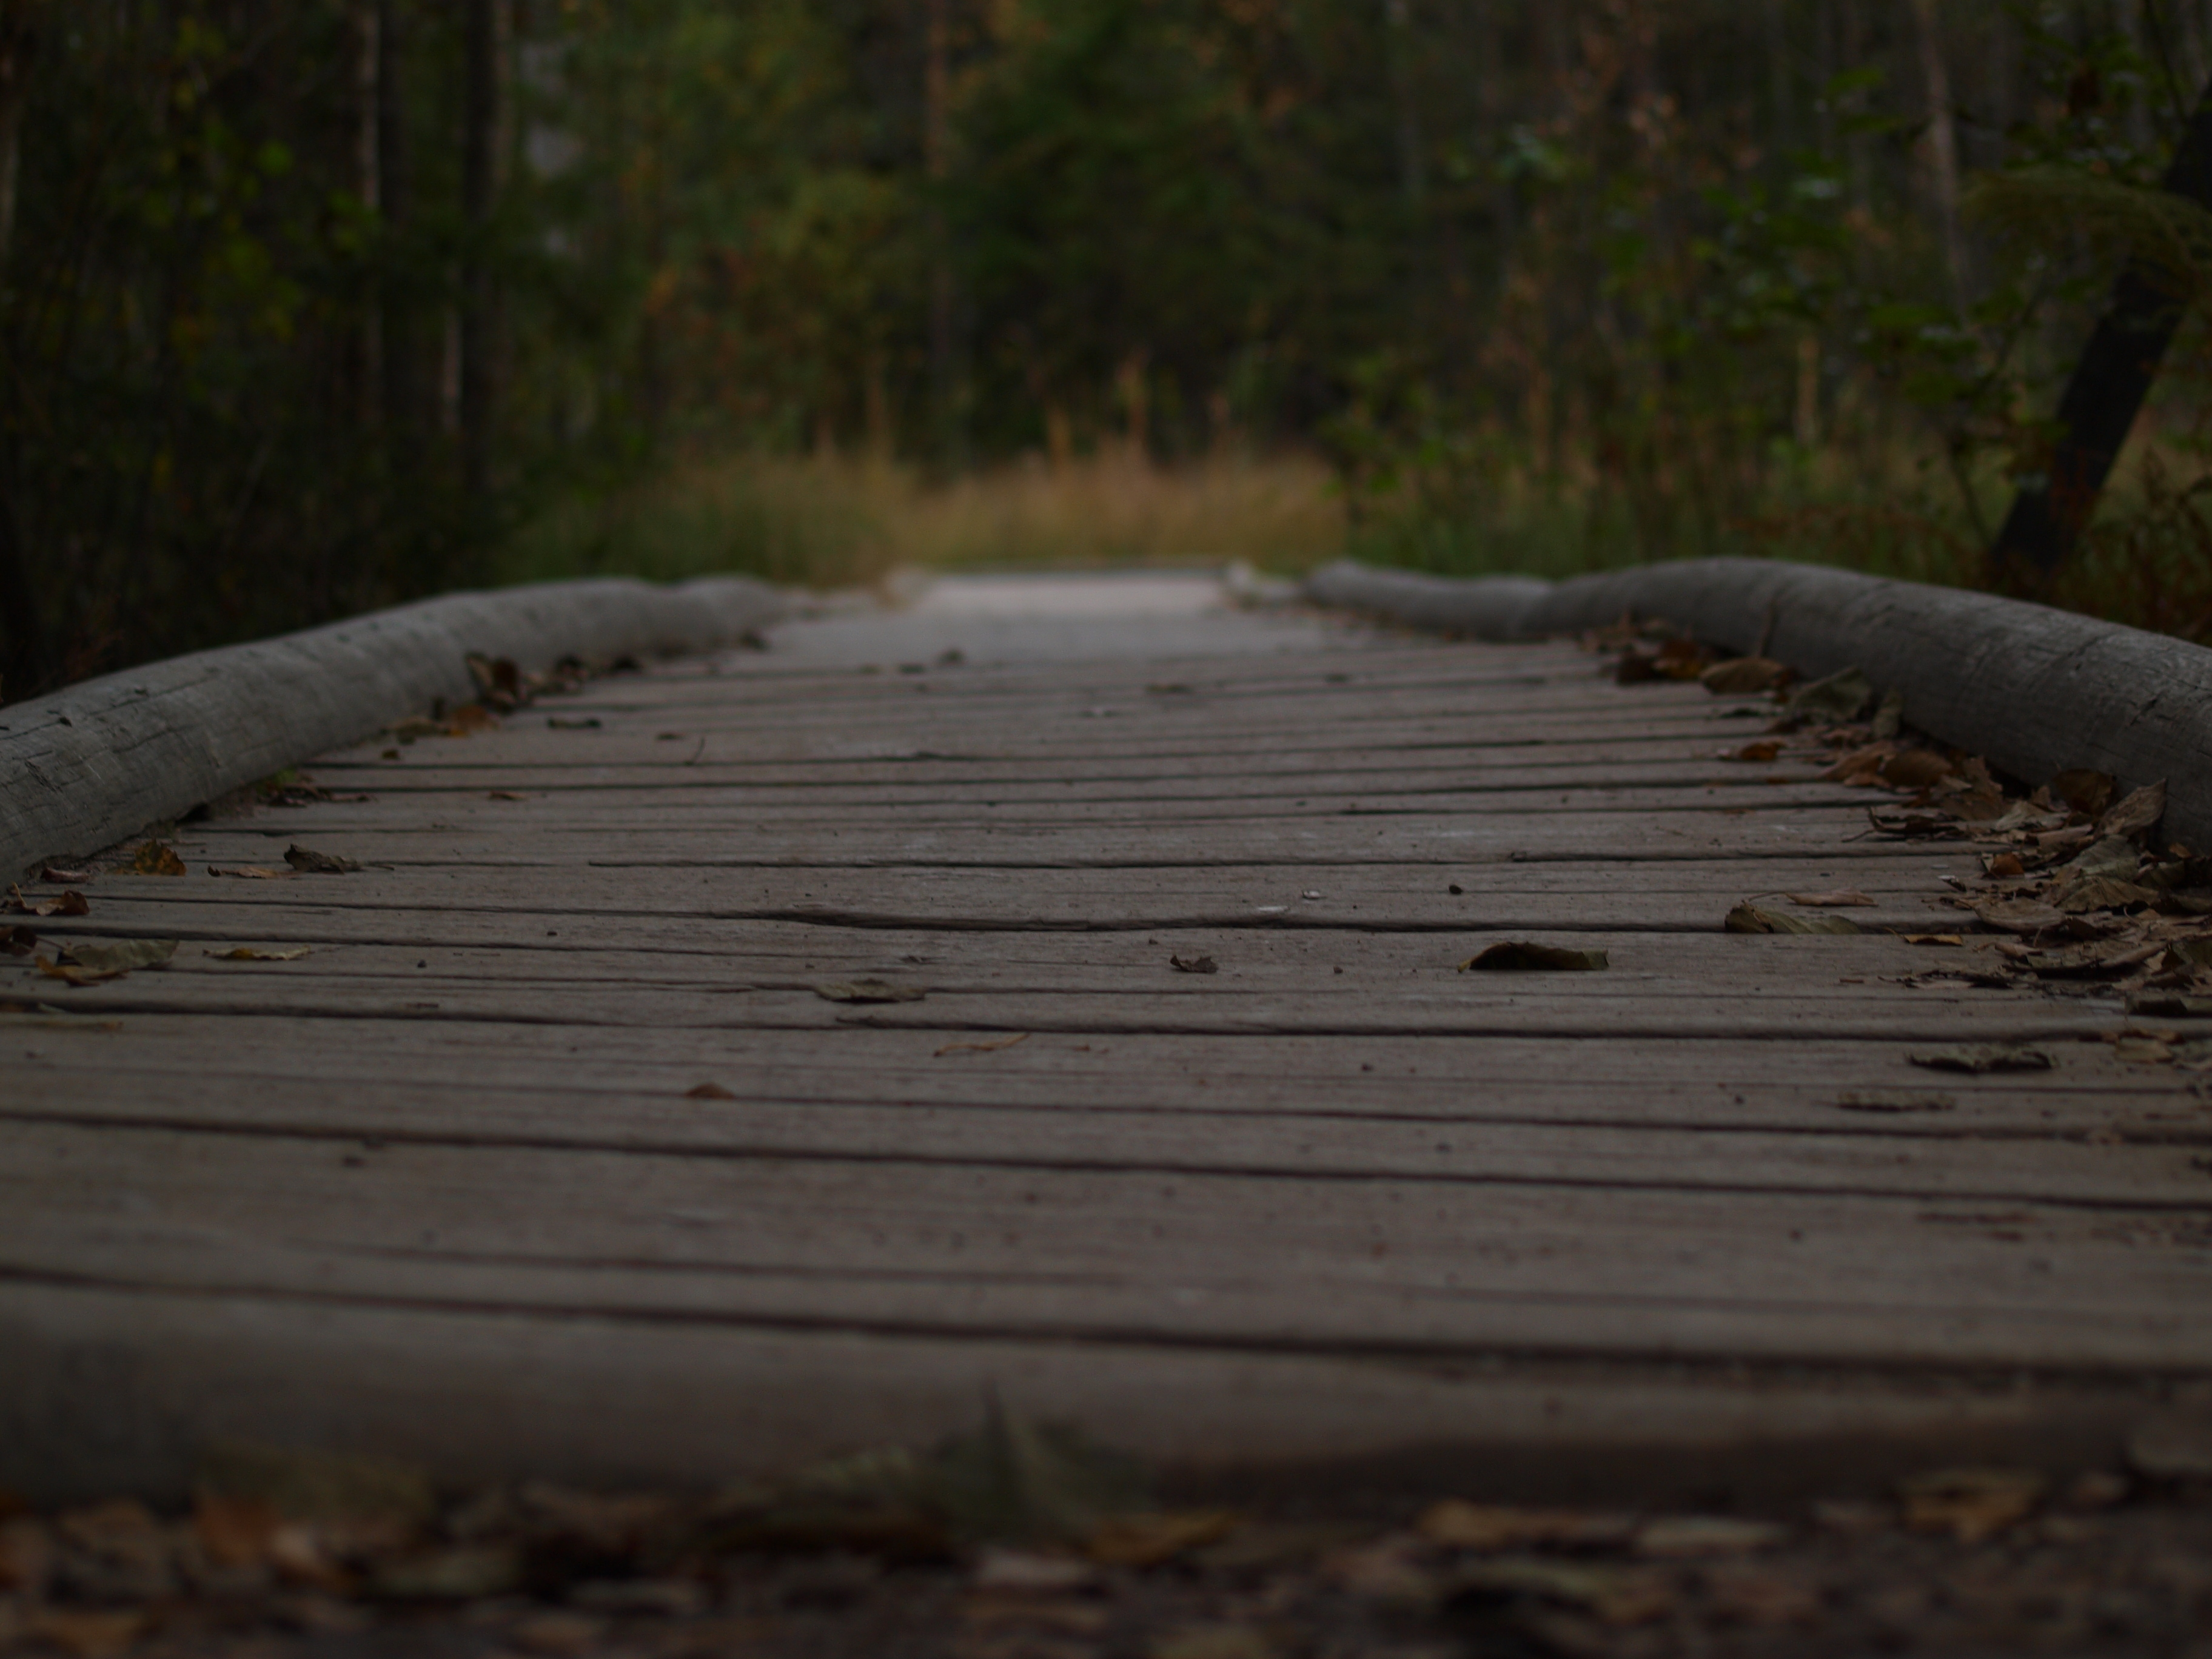 Path with wooden bridge, Bridge, Nature, Over, Path, HQ Photo